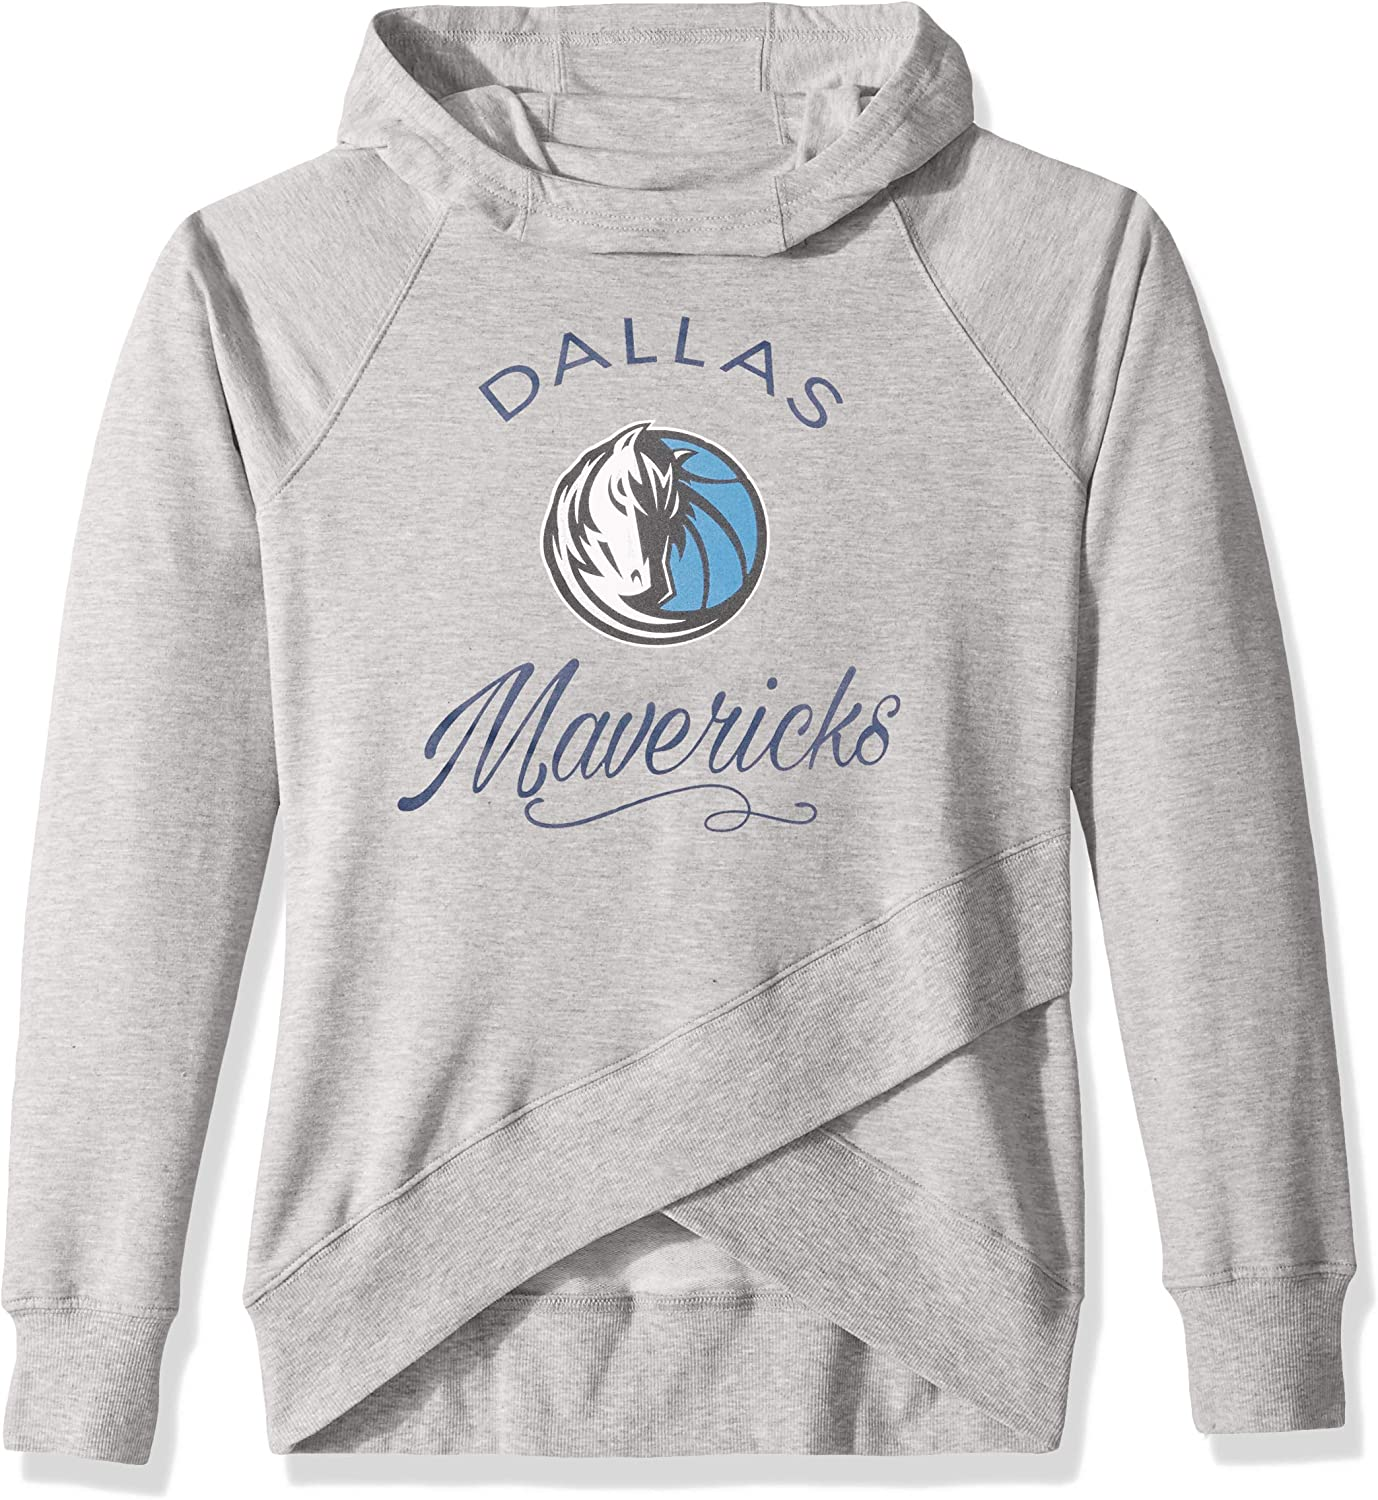 NBA by Outerstuff NBA Youth Girls Dallas Mavericks The Bridge Long Sleeve Funnel Neck Hoodie Youth Large 14 Heather Grey